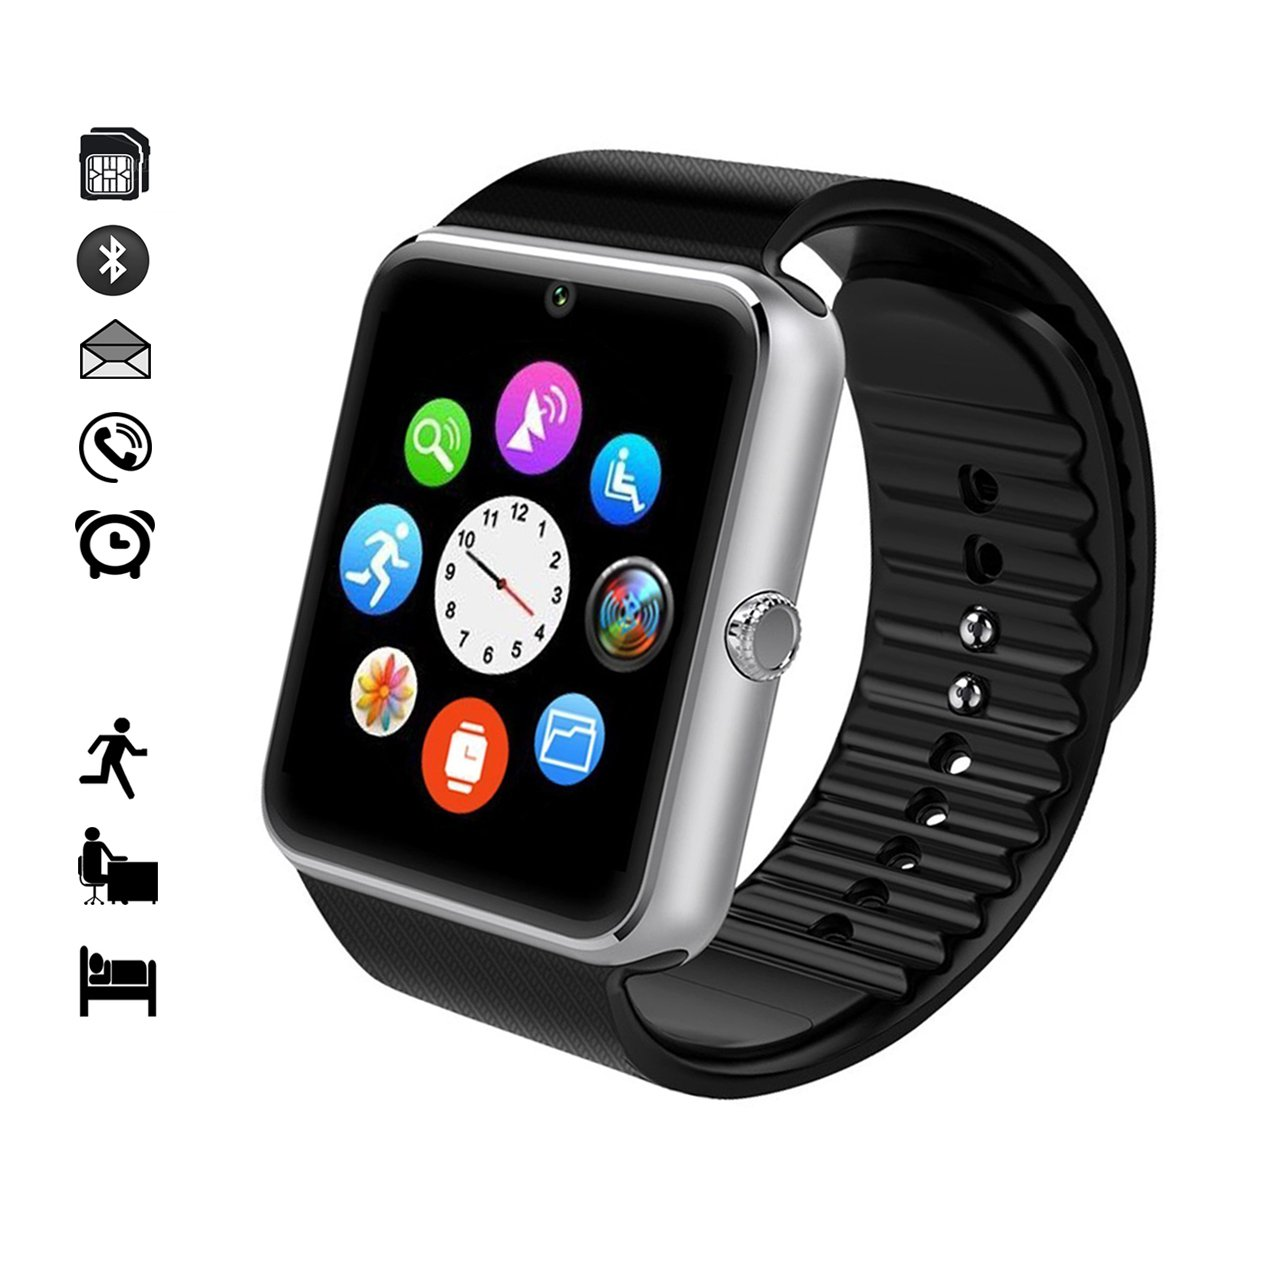 malltek android smart watch bluetooth on supaprice. Black Bedroom Furniture Sets. Home Design Ideas